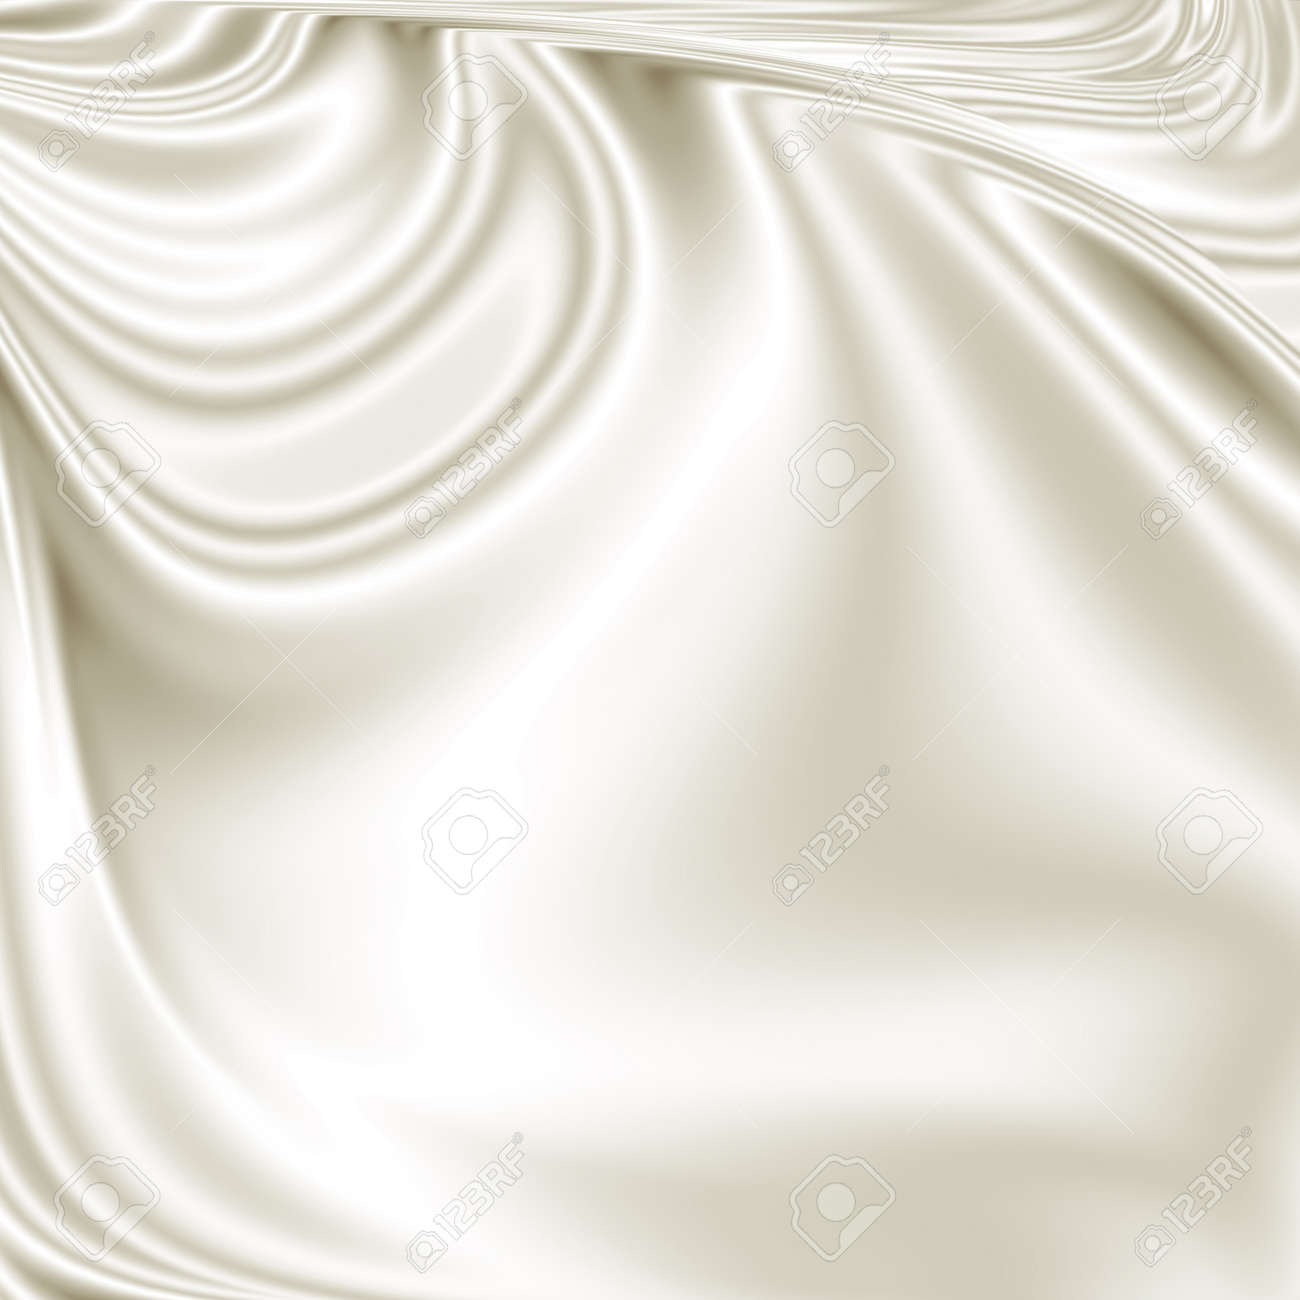 c6776241dbdec White Smooth Fabric Texture Stock Photo, Picture And Royalty Free ...